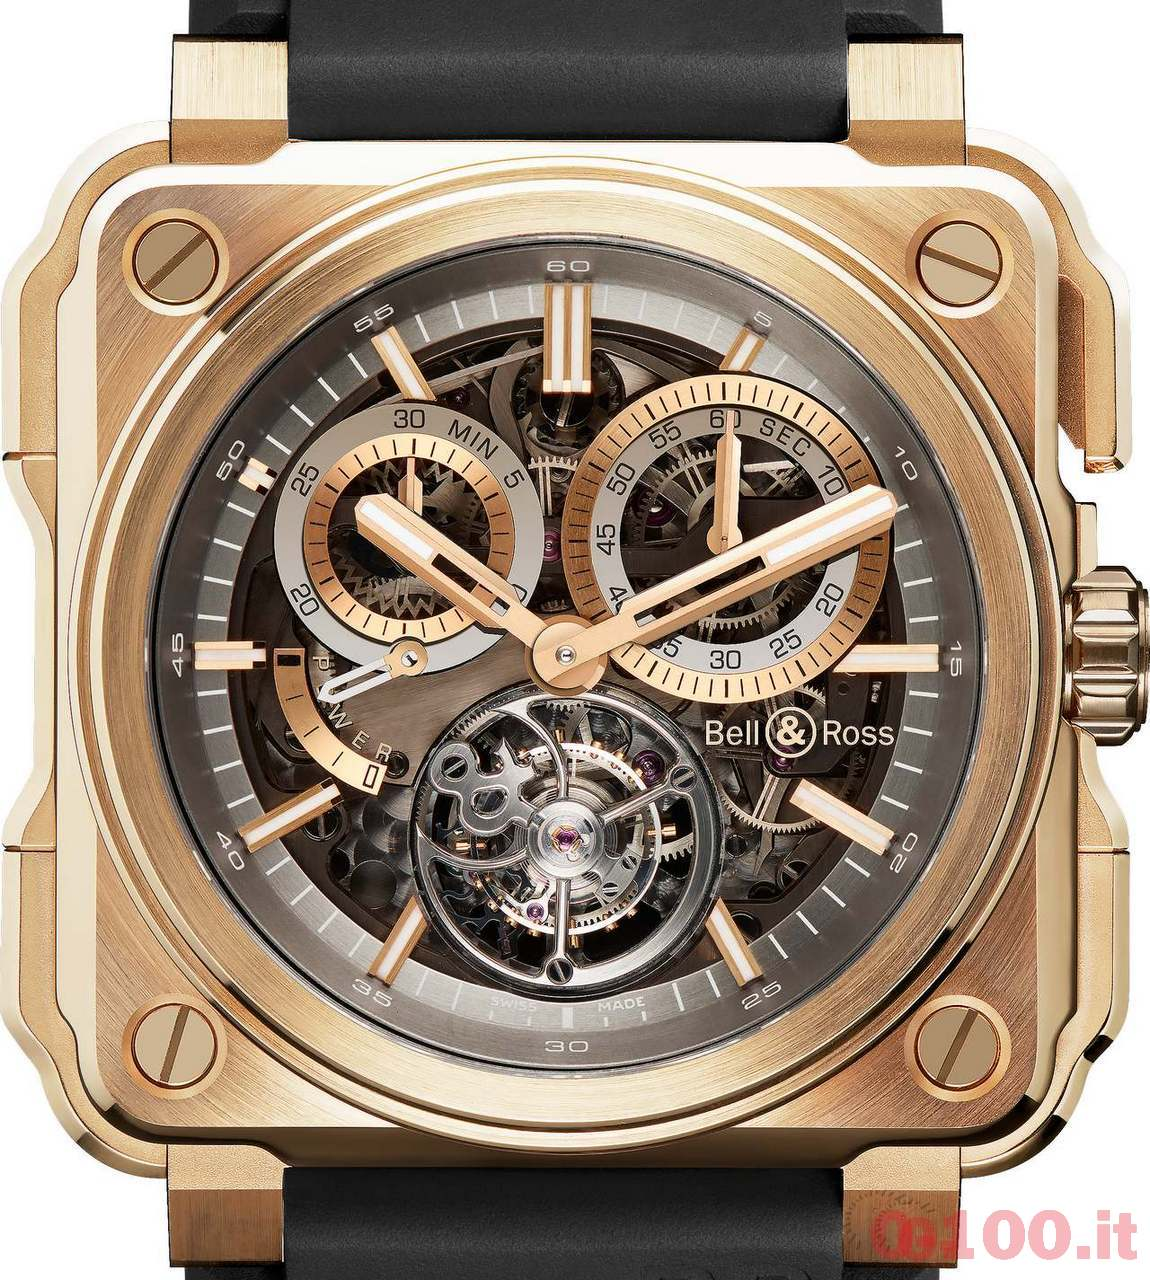 bell-ross-br-x1-chronograph-tourbillon-limited-edition-prezzo-price_0-1002